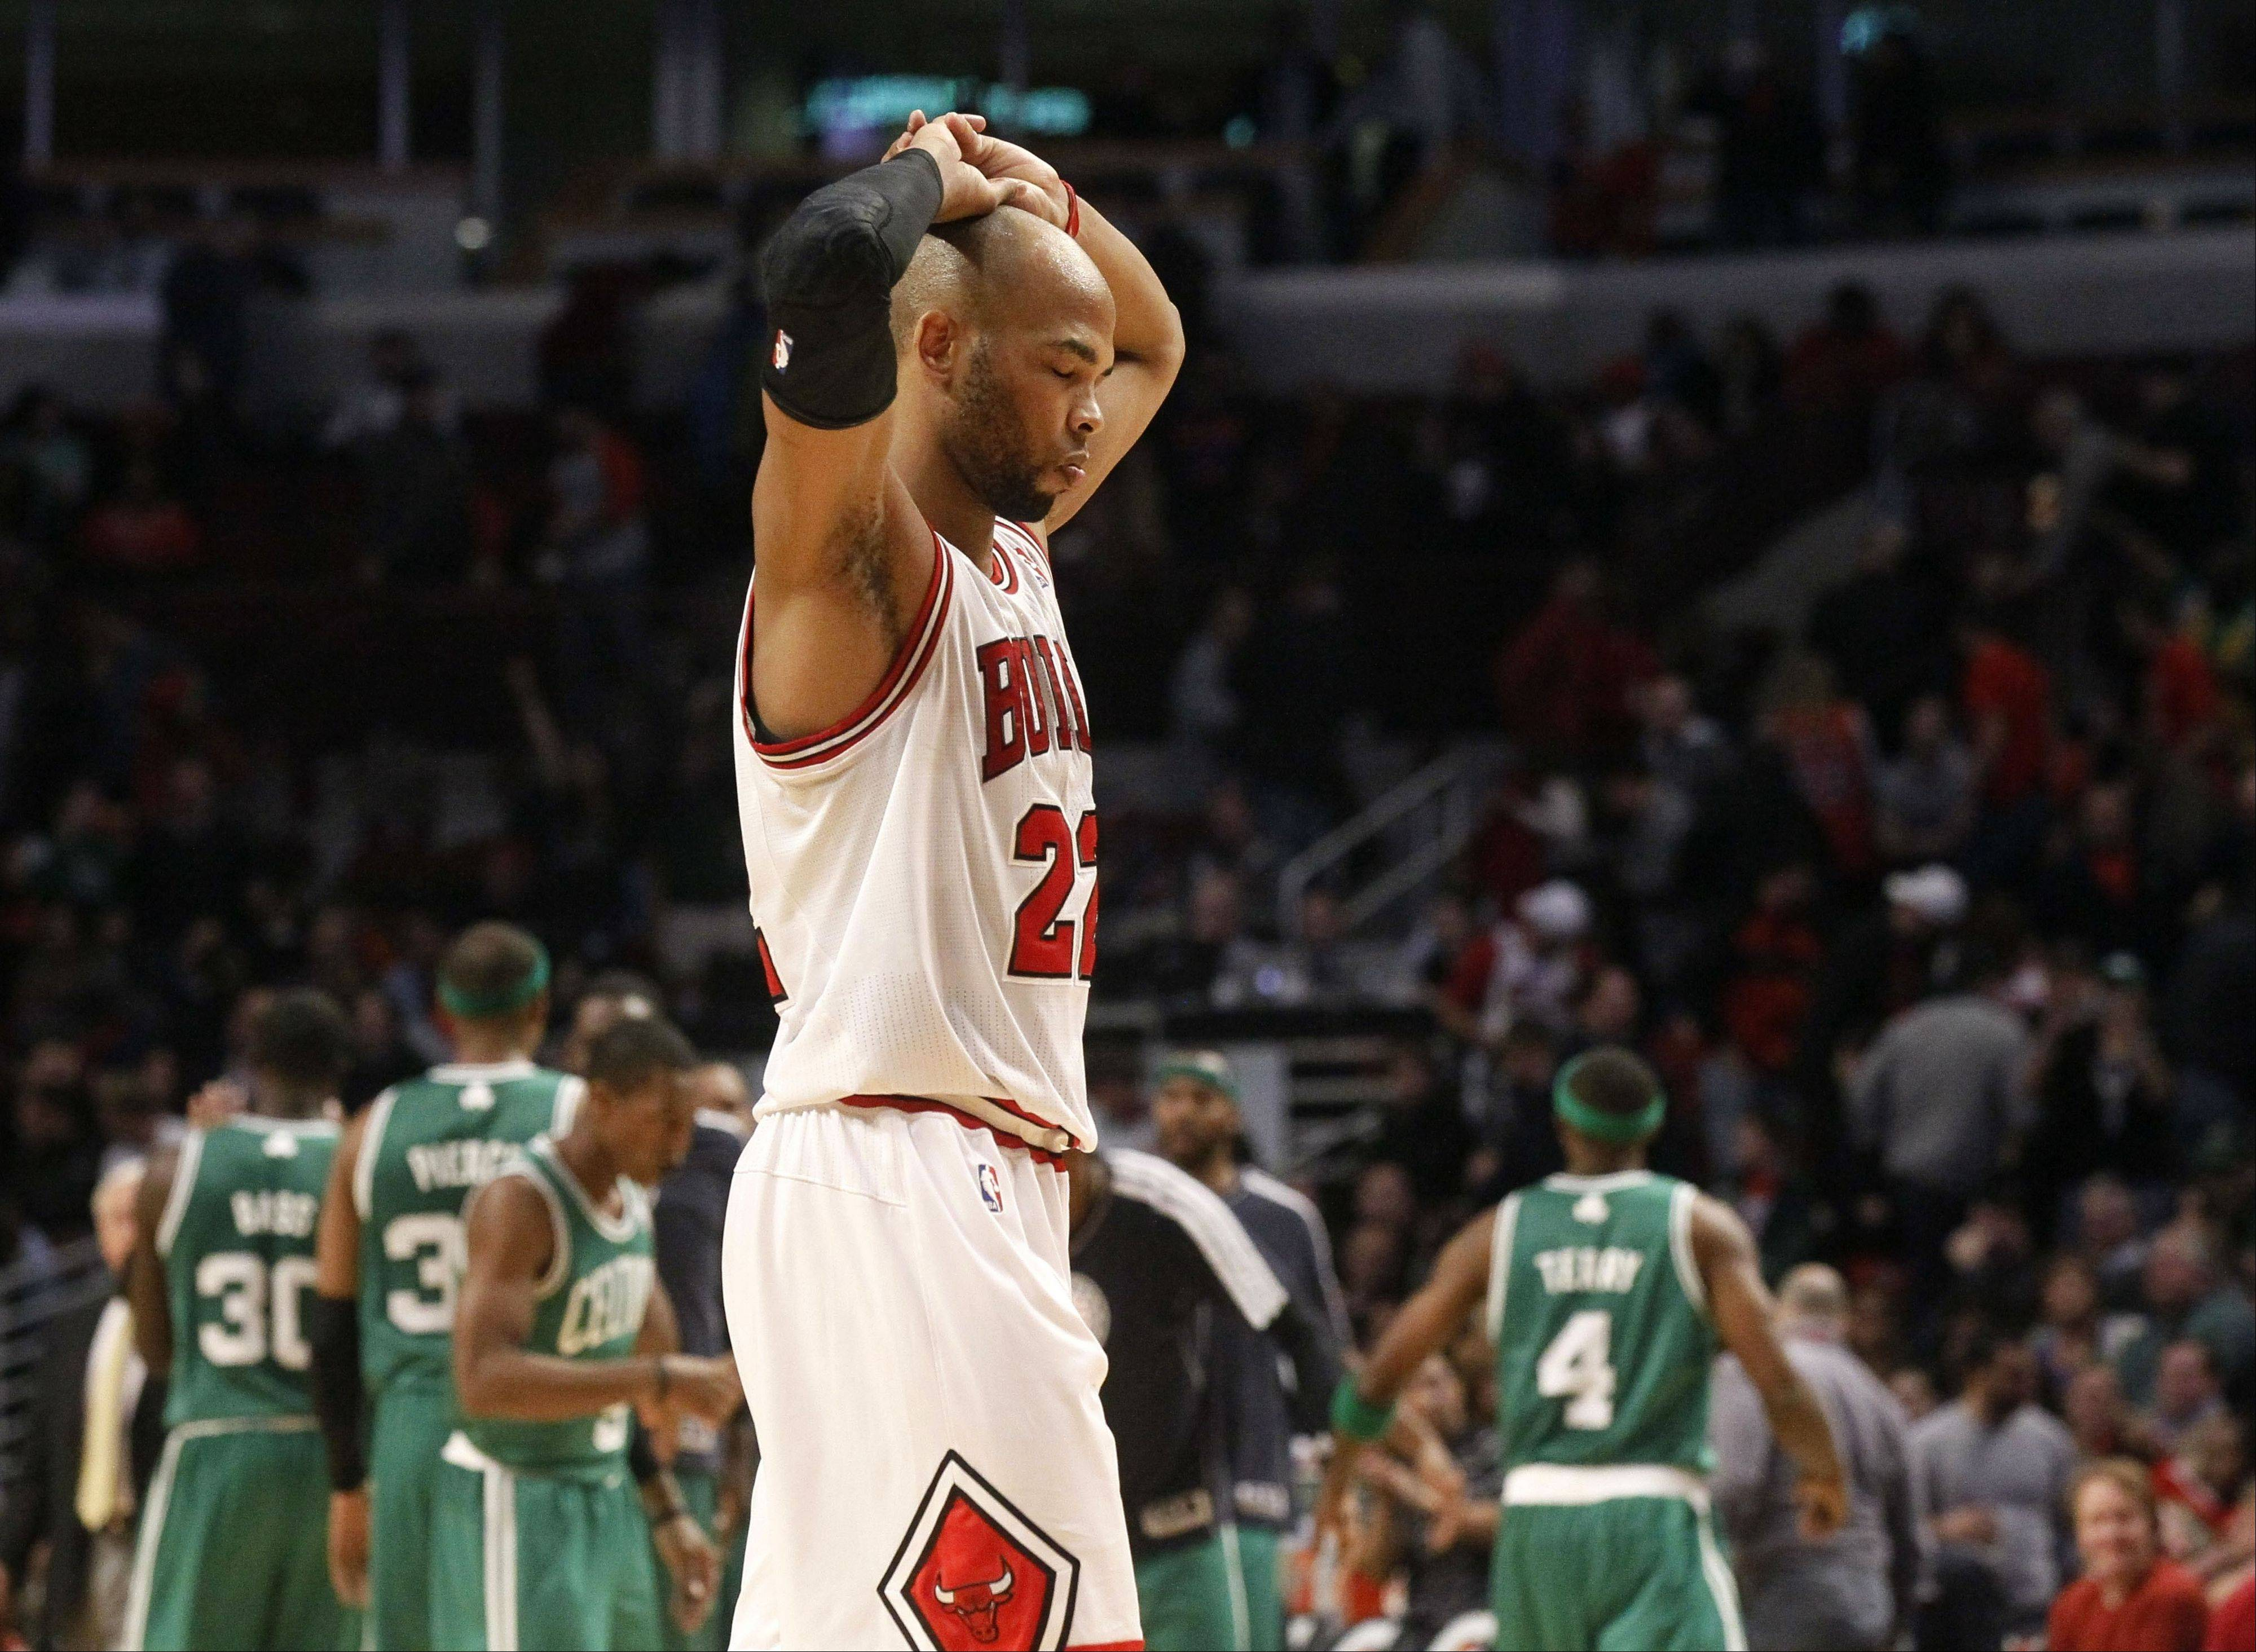 Bulls 'try' too late as Celtics hold on